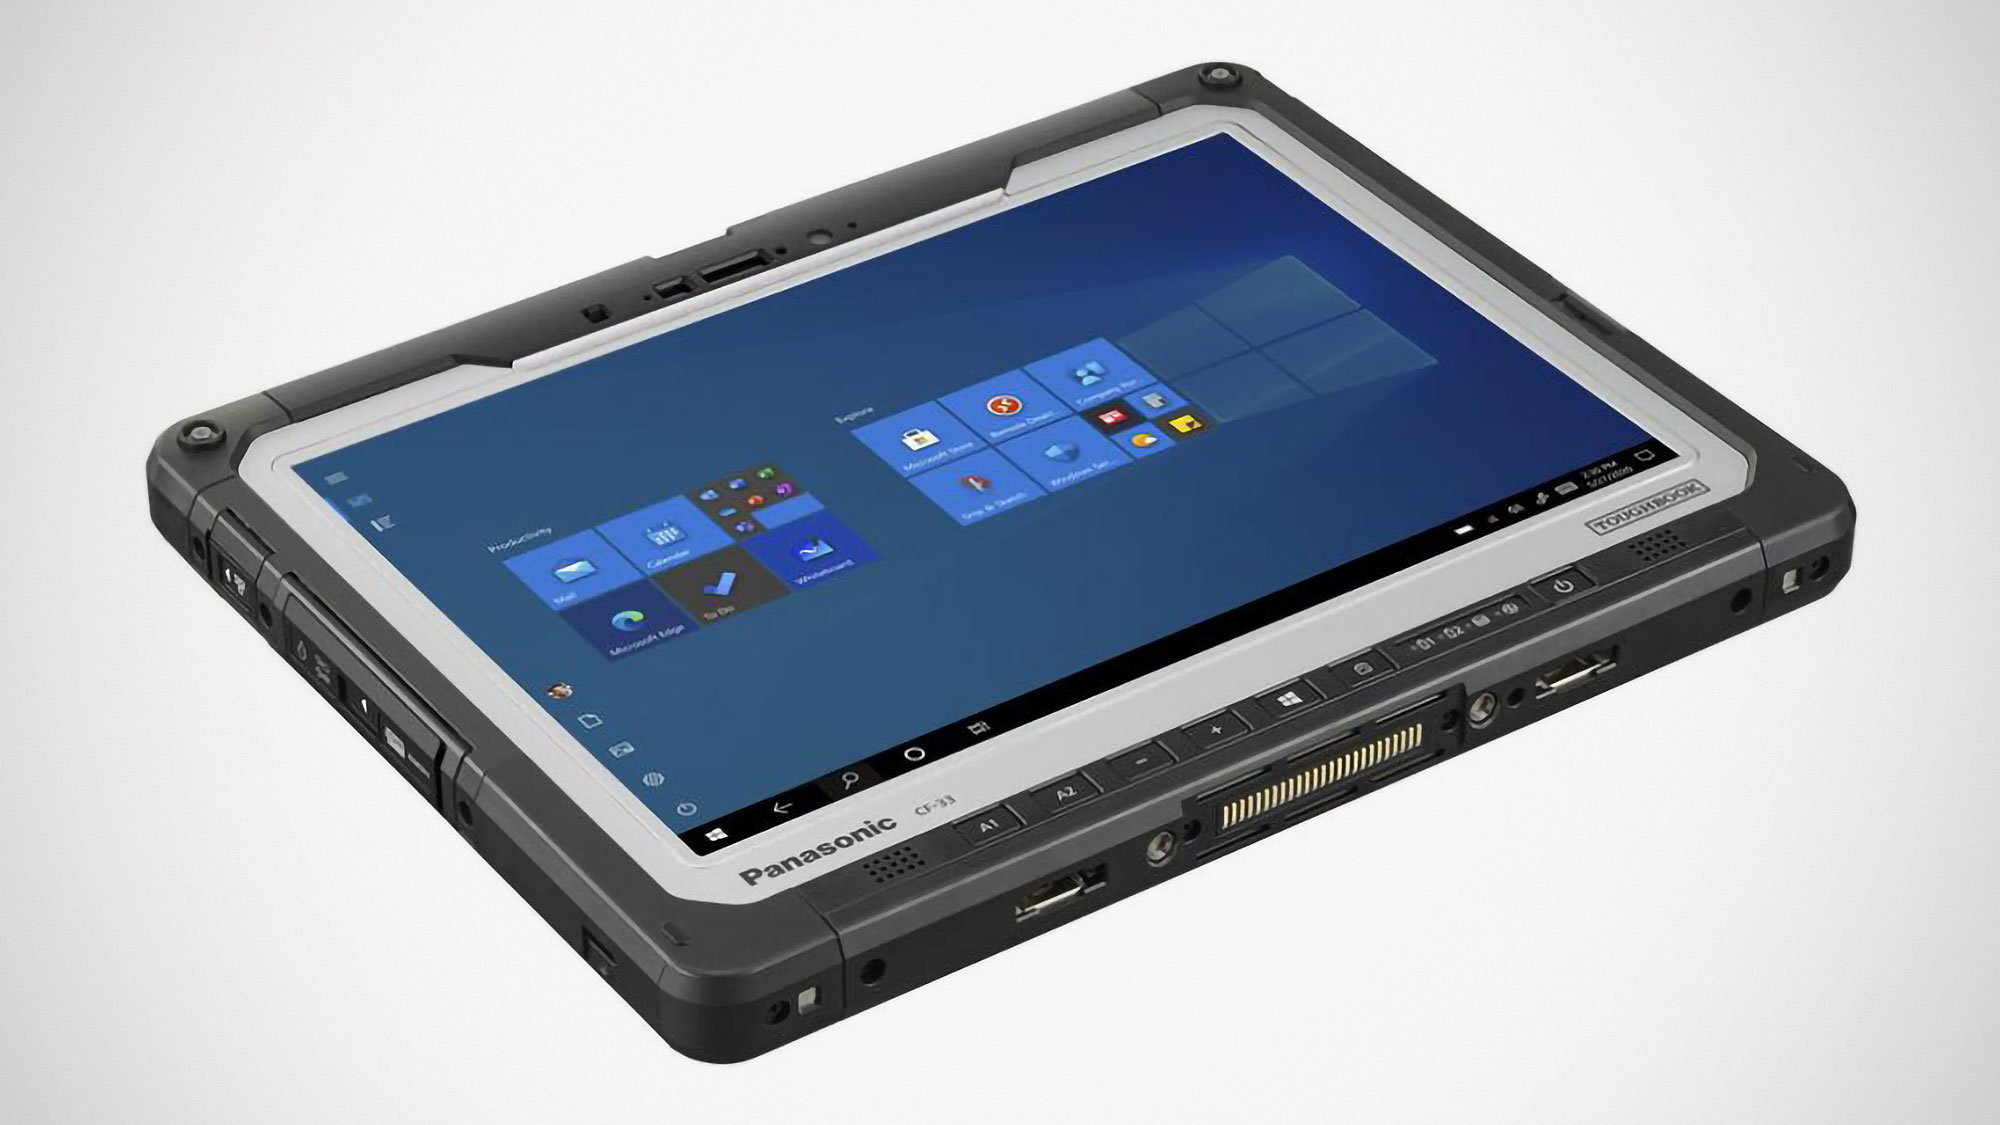 Panasonic Toughbook 33 2-in-1 Rugged Computer